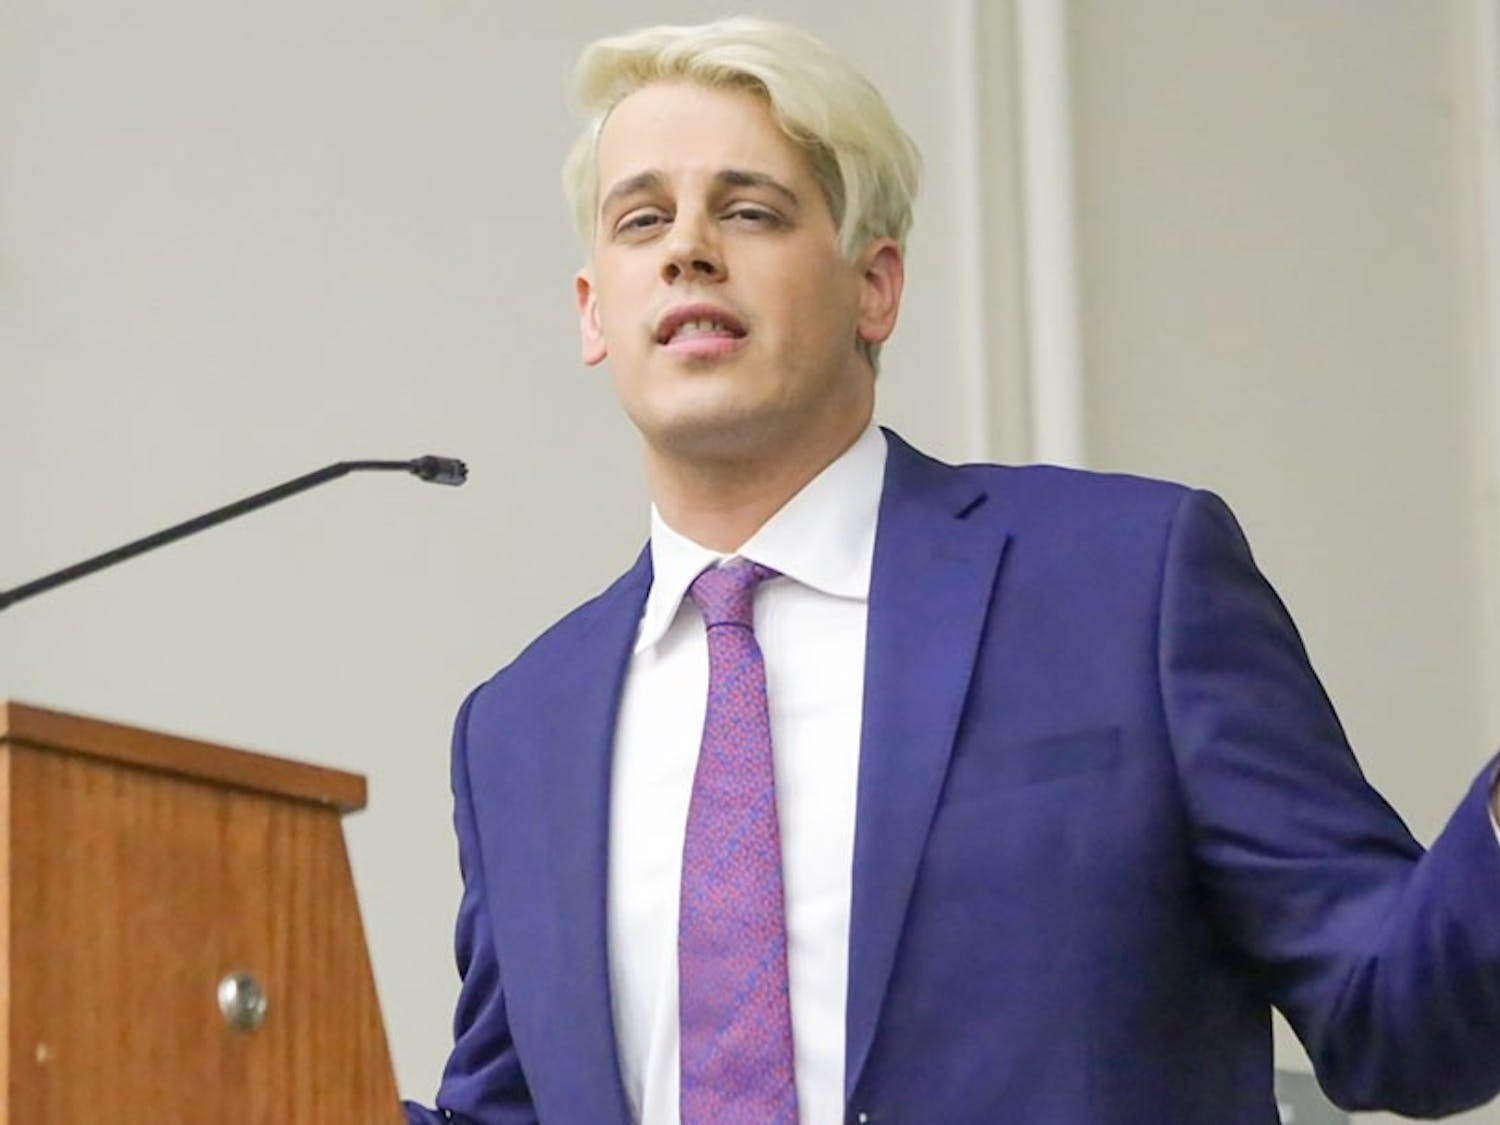 Controversial journalist Milo Yiannopoulos speaks at Rutgers University in February, where students protested his speech. Young Americans for Liberty is planning to bring Yiannopoulos to UB, causing concern for some students.